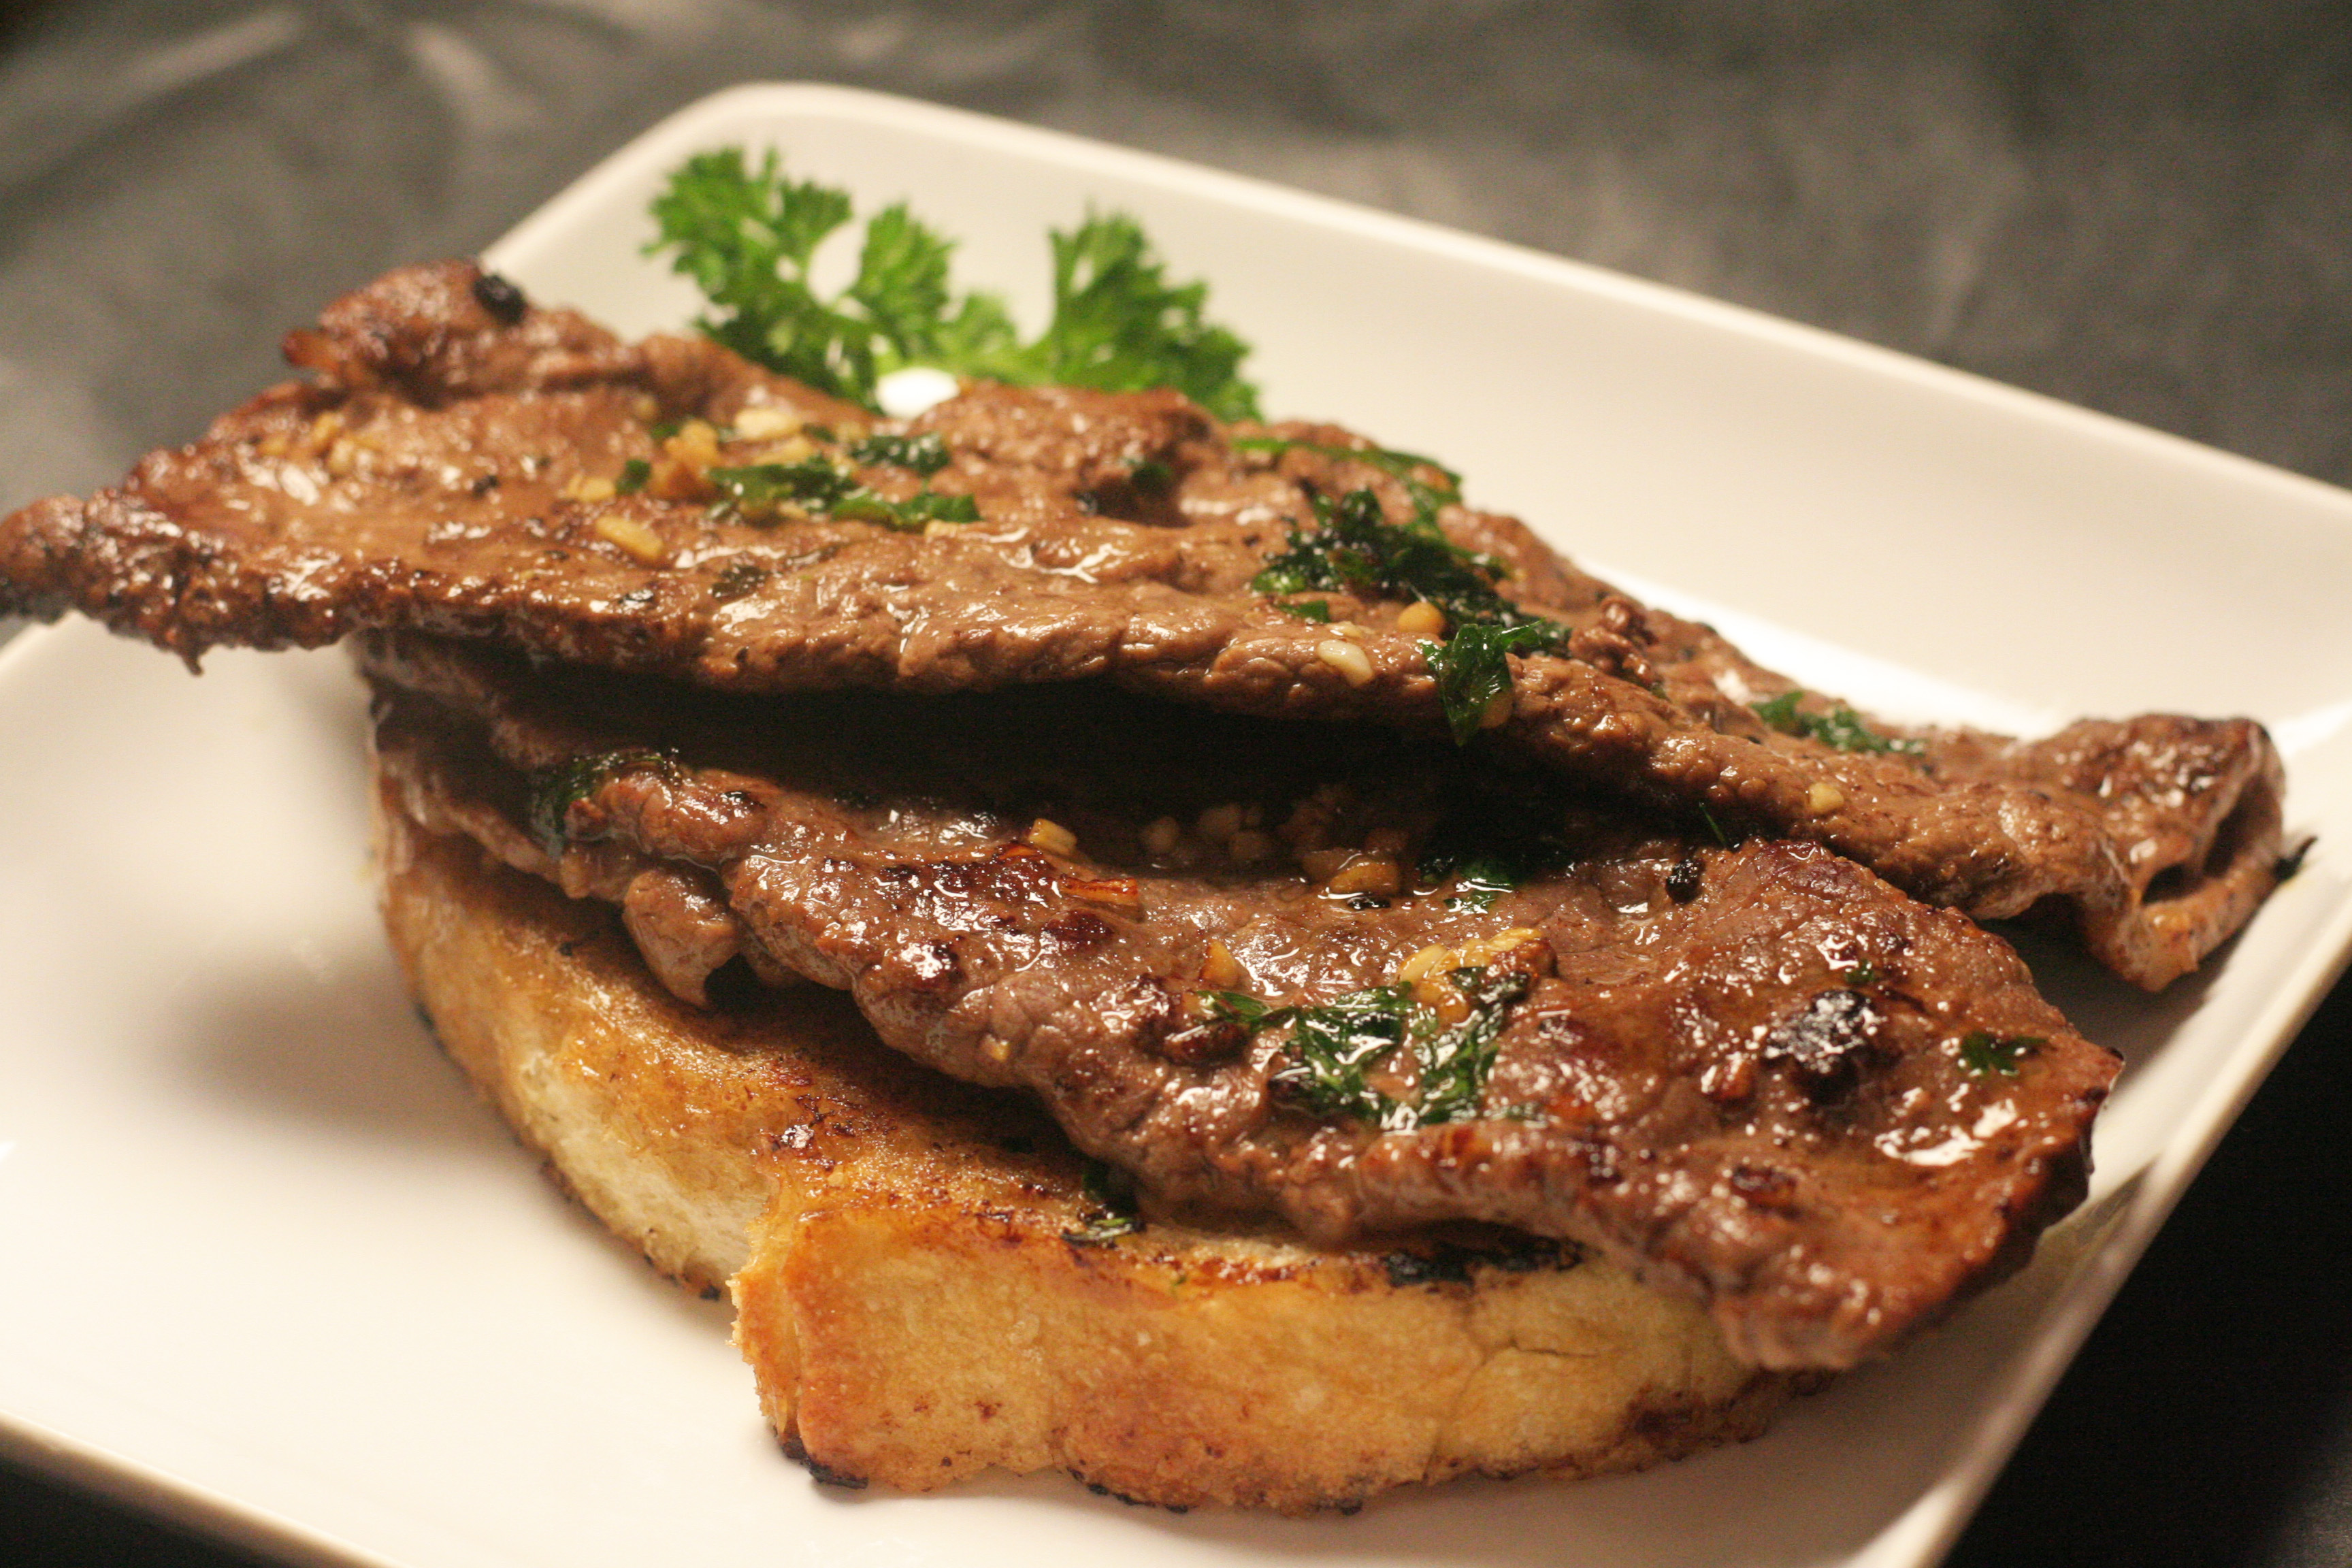 Steak Diane with garlic and parsley